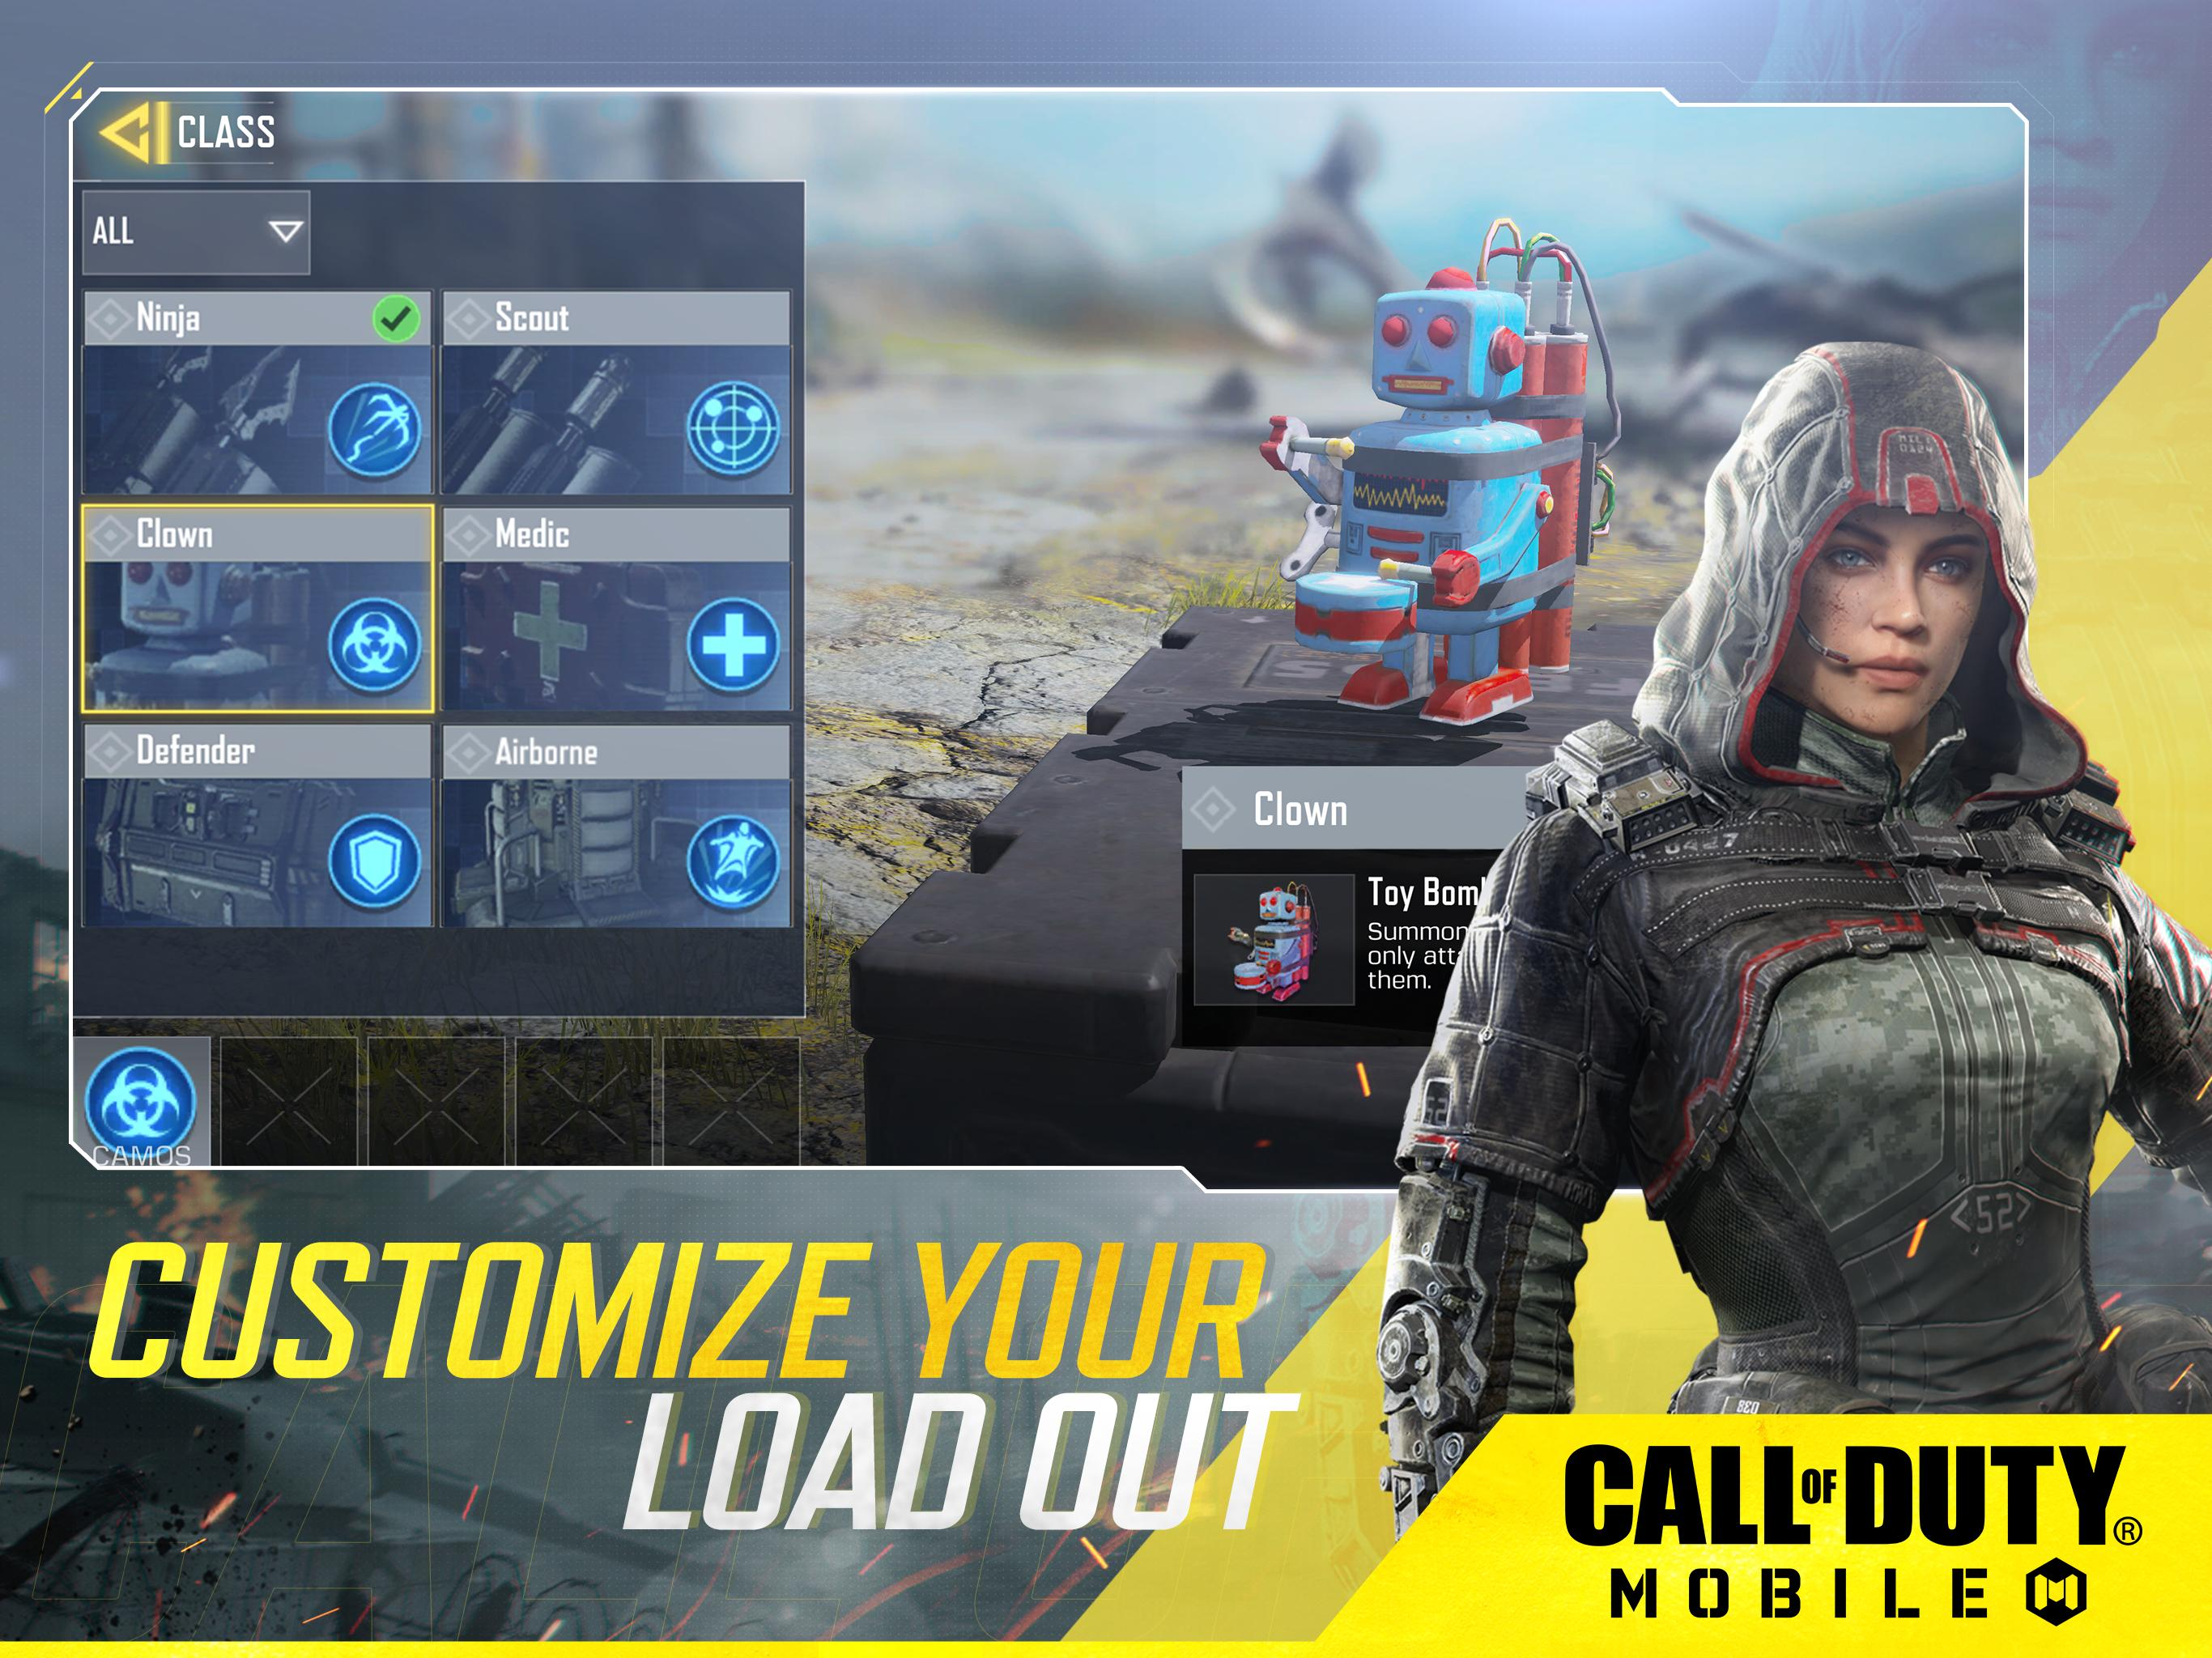 Here S How To Get The Best Out Of Call Of Duty Mobile